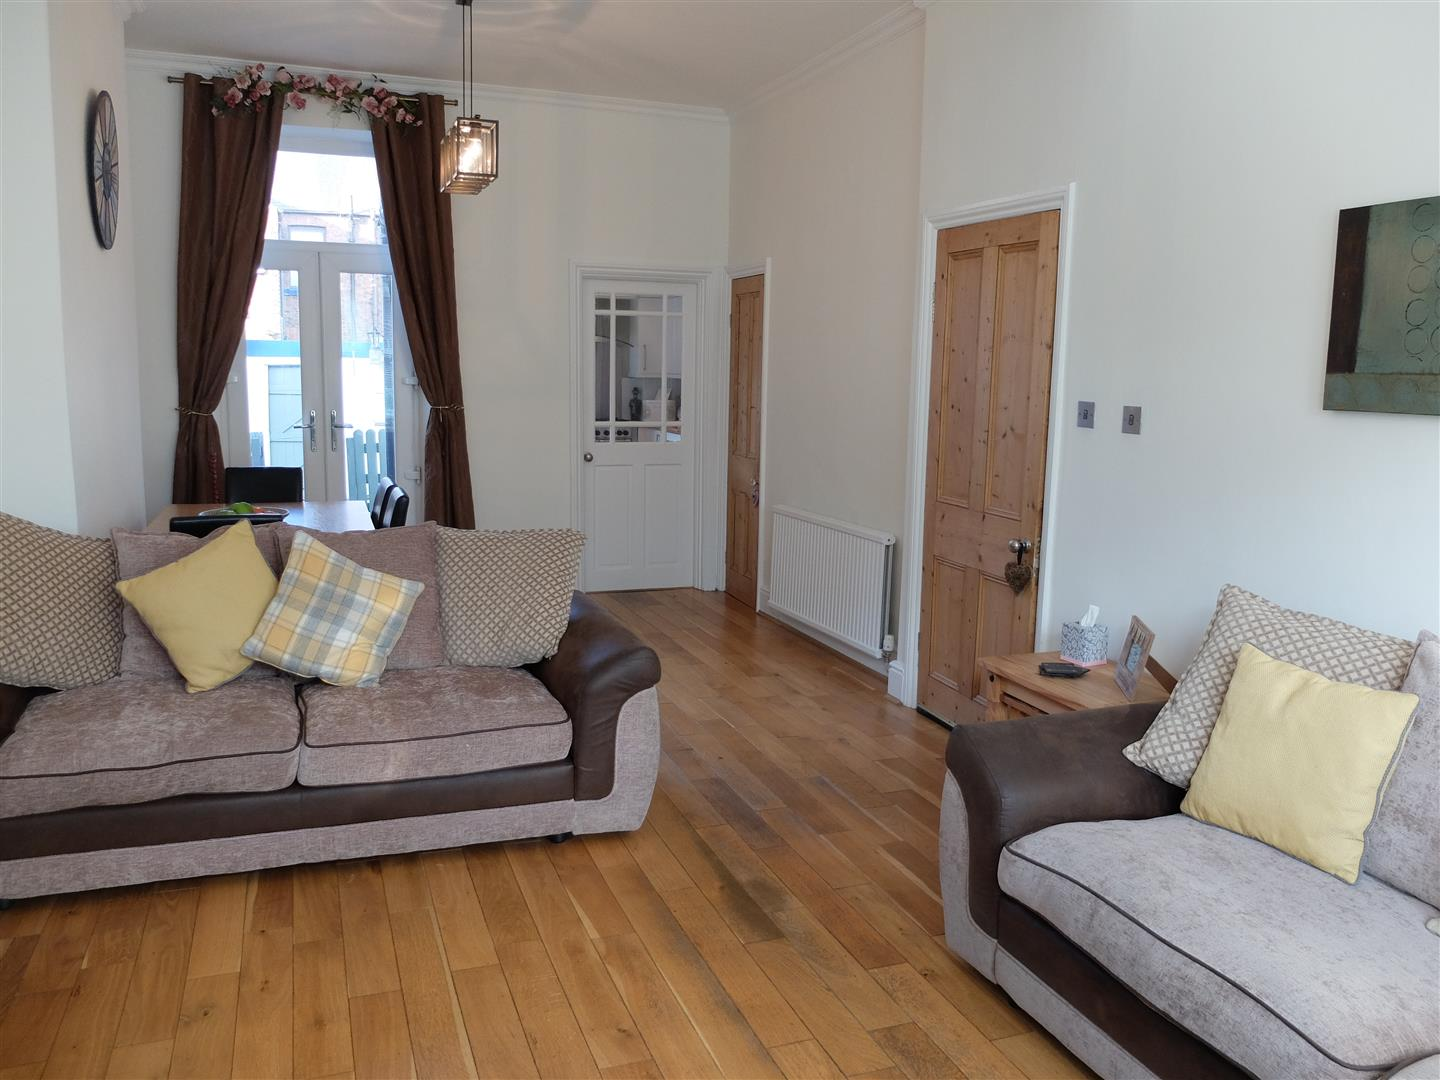 3 Bedrooms House - Mid Terrace For Sale 116 Newtown Road Carlisle 140,000